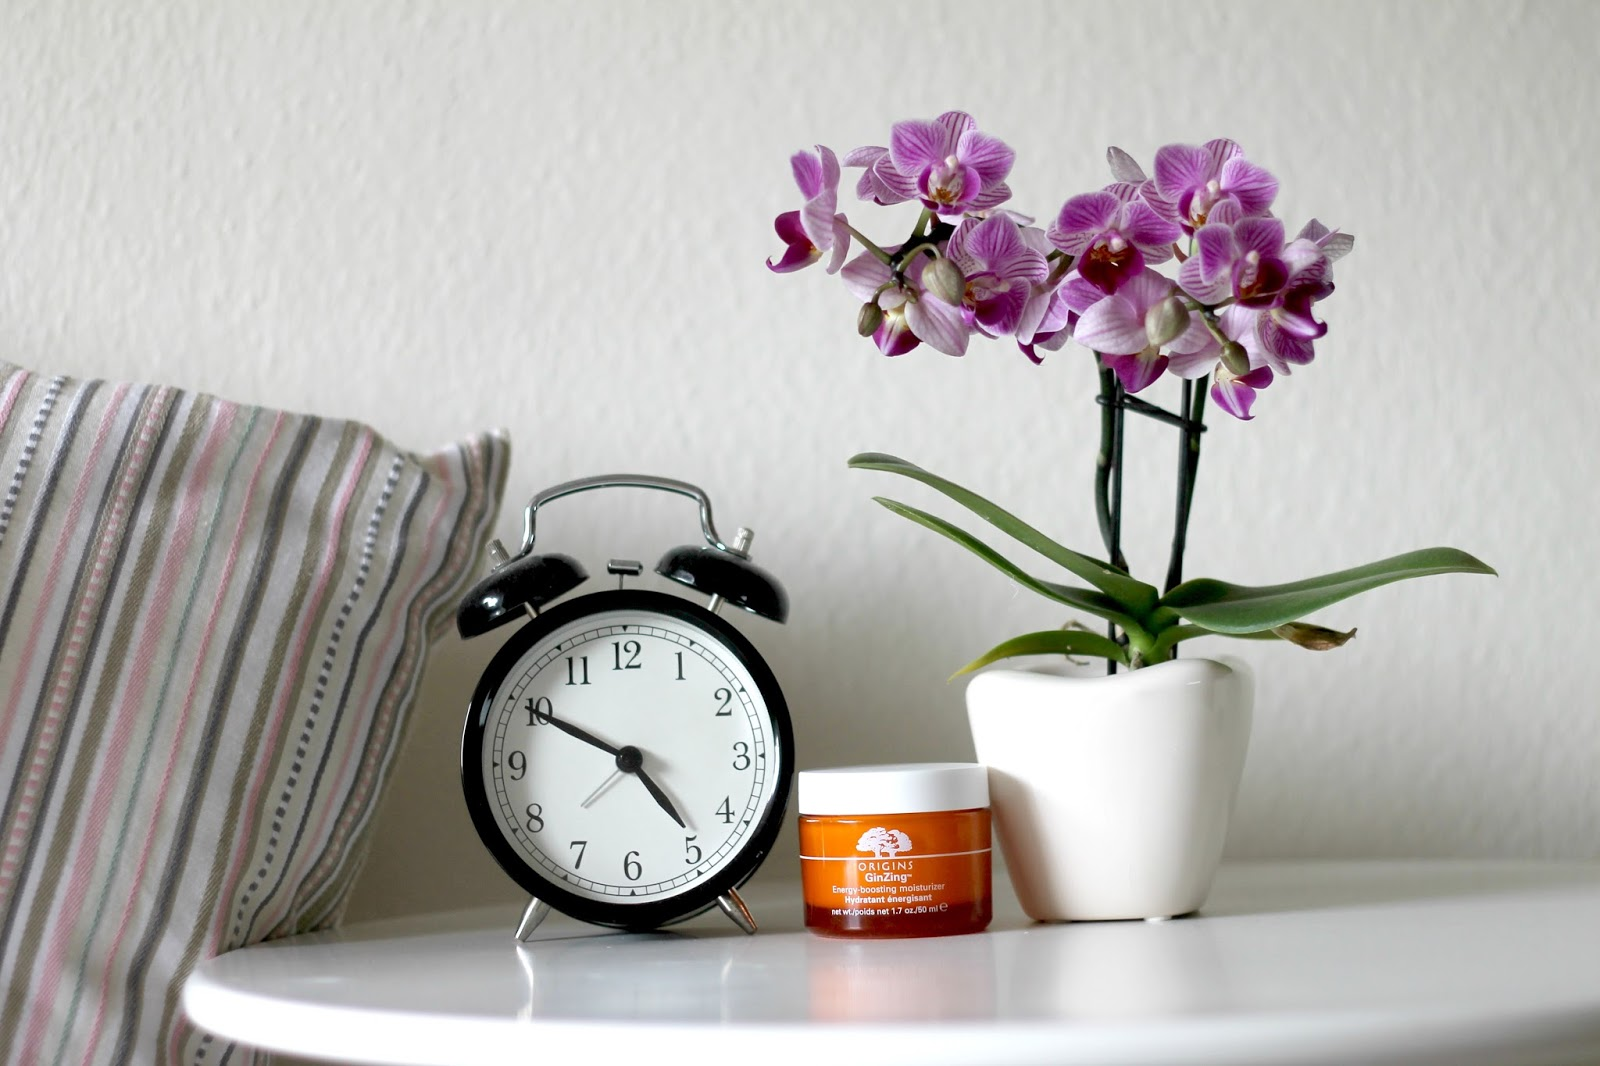 5 Steps To Do The Night Before To Make Your Mornings Less Hectic